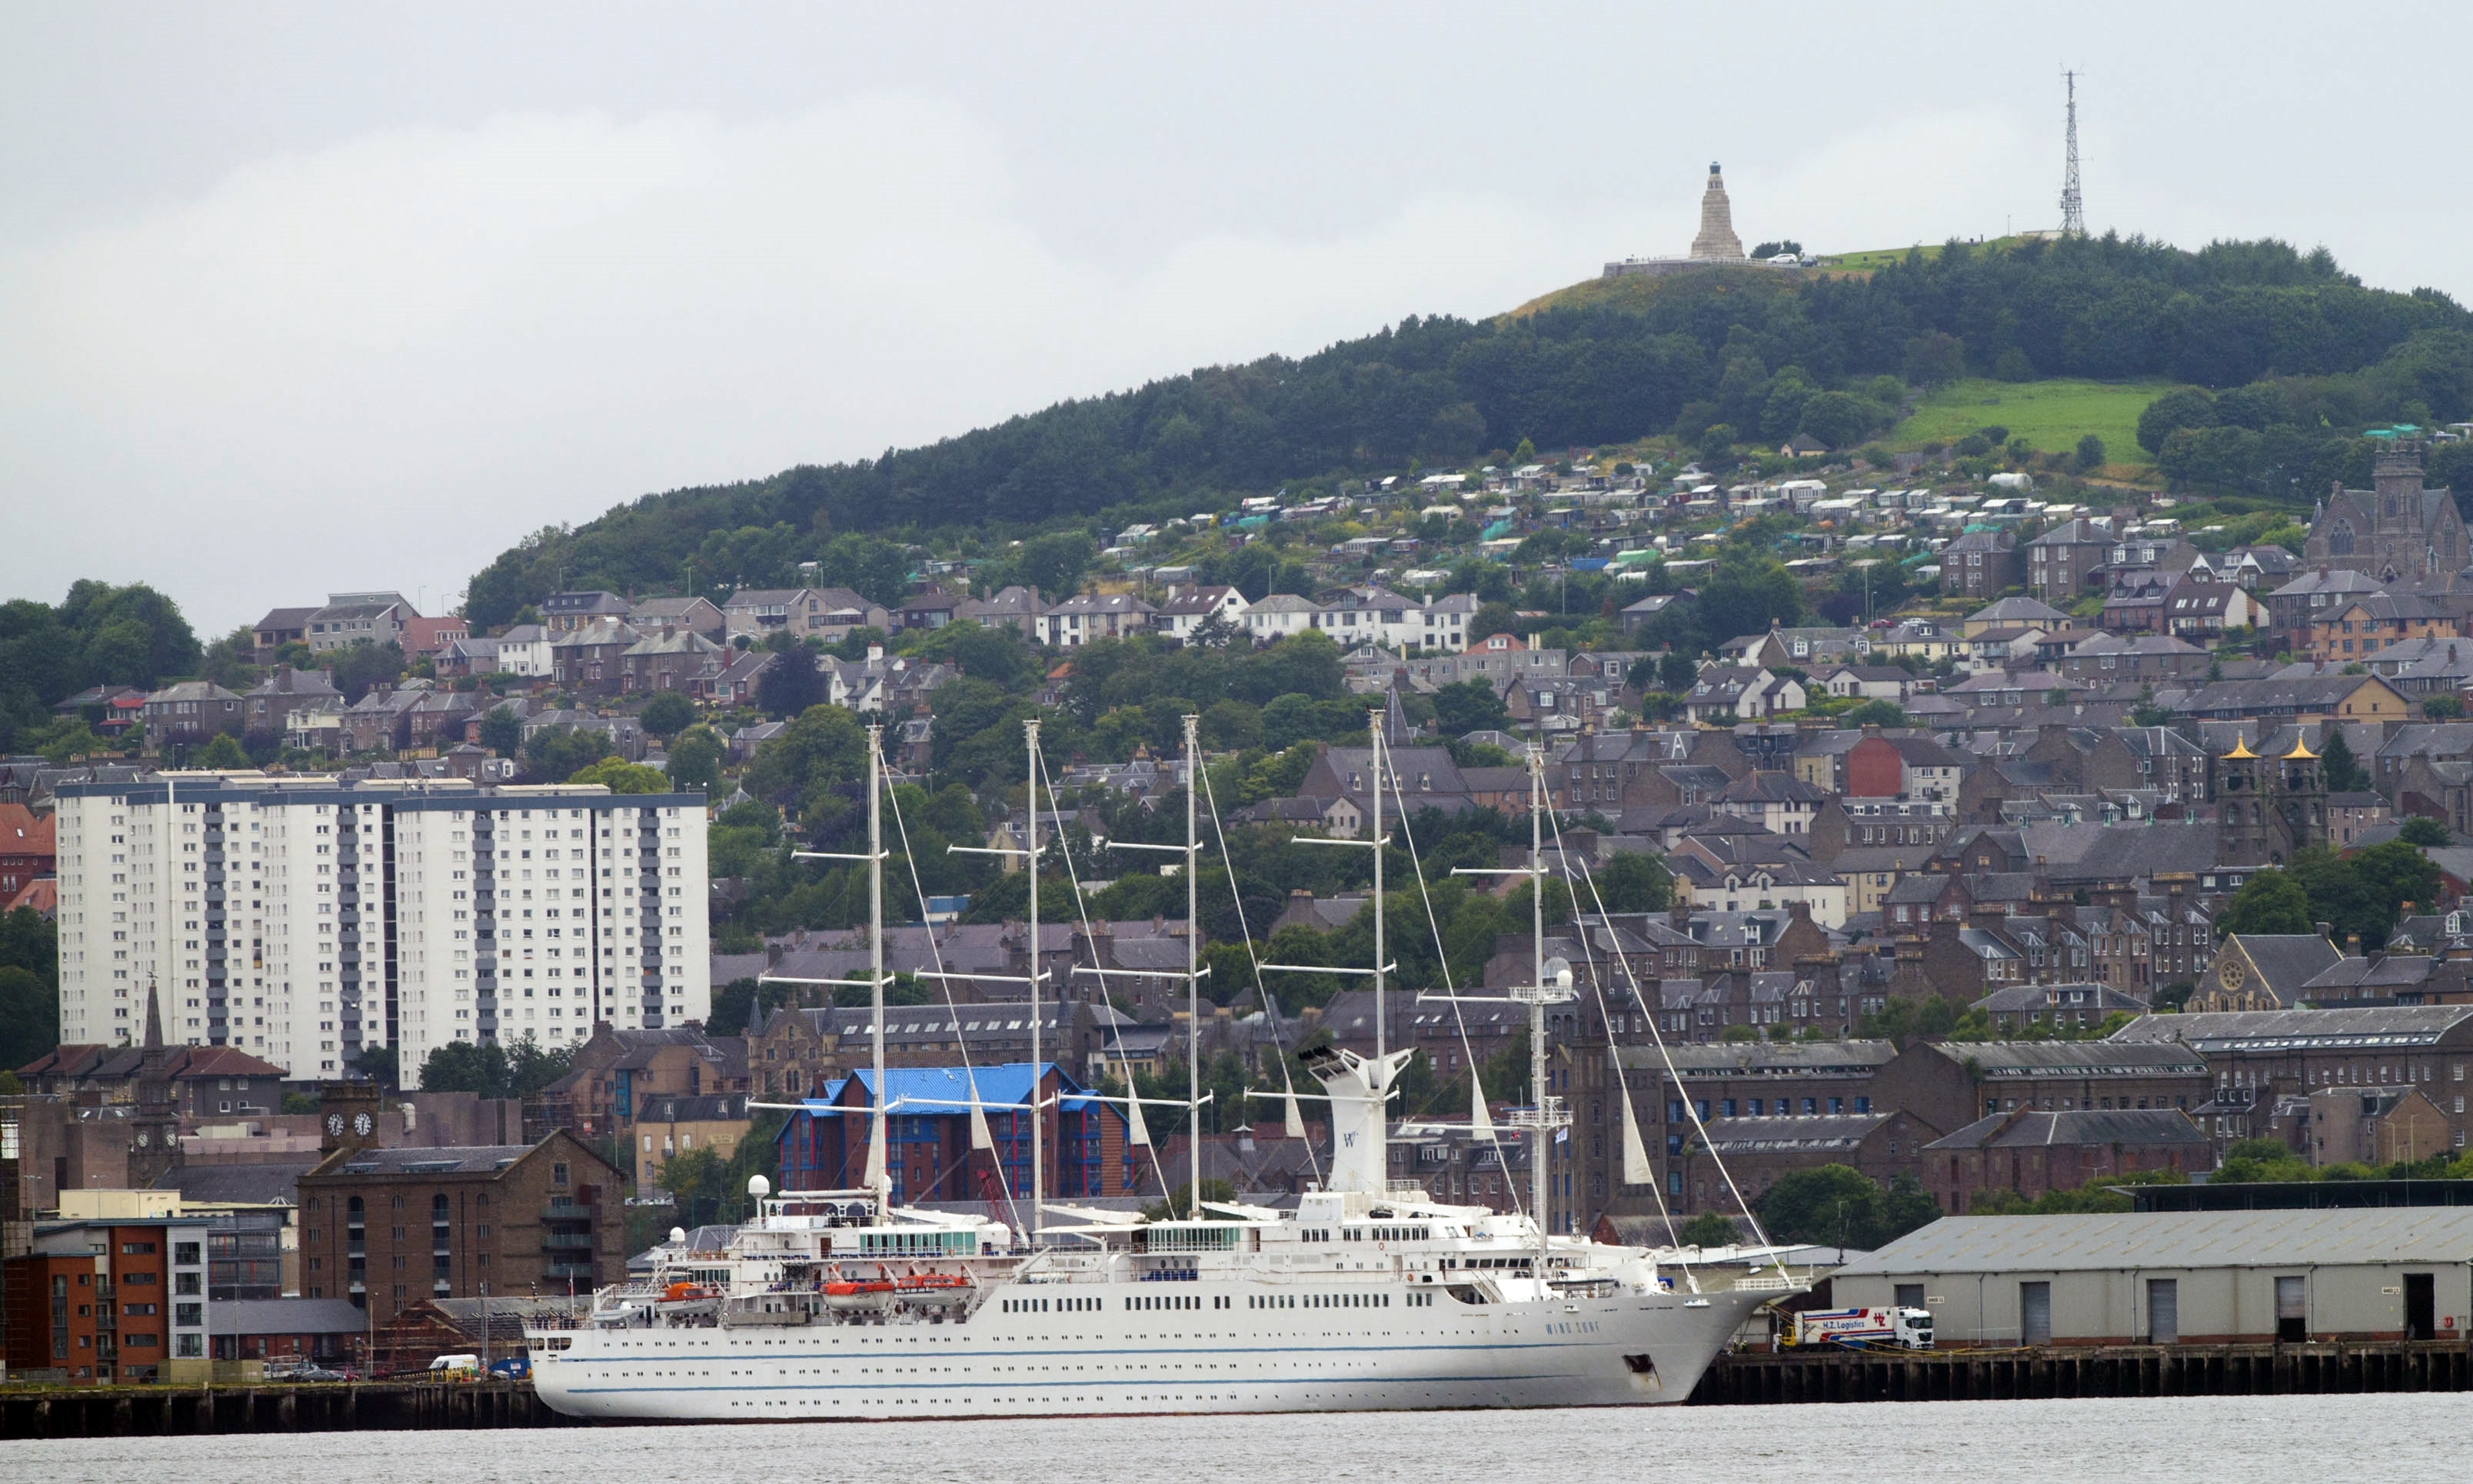 The Wind Surf berthed in Dundee.